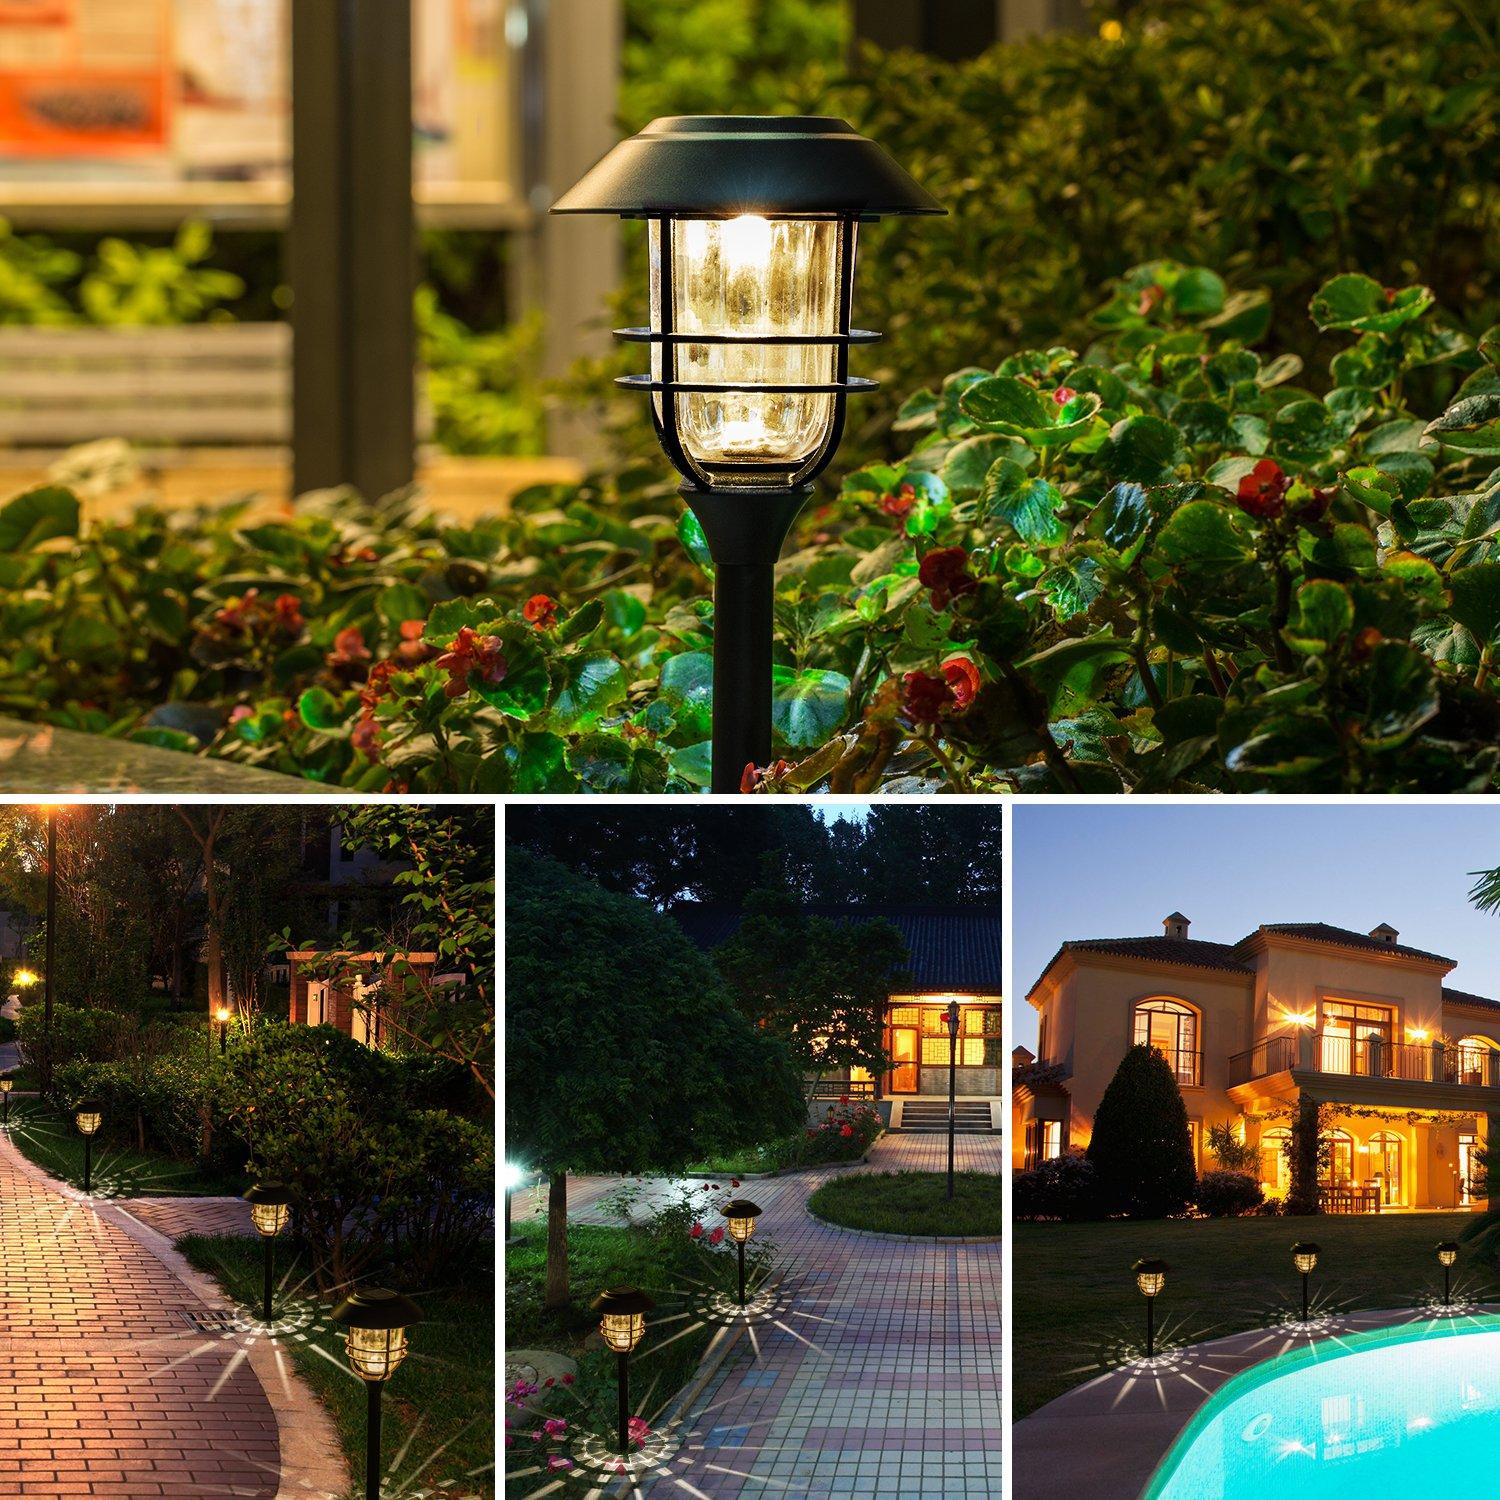 Solar Lights Outdoor Pathway - 4 Pack Bright Glass Solar Powered LED Garden Path Landscape Lighting Bronze Powder Coated Die Casting Aluminum Patio Path Lights Heavy-Duty for All Weather (Bronze) by Sunwind (Image #4)